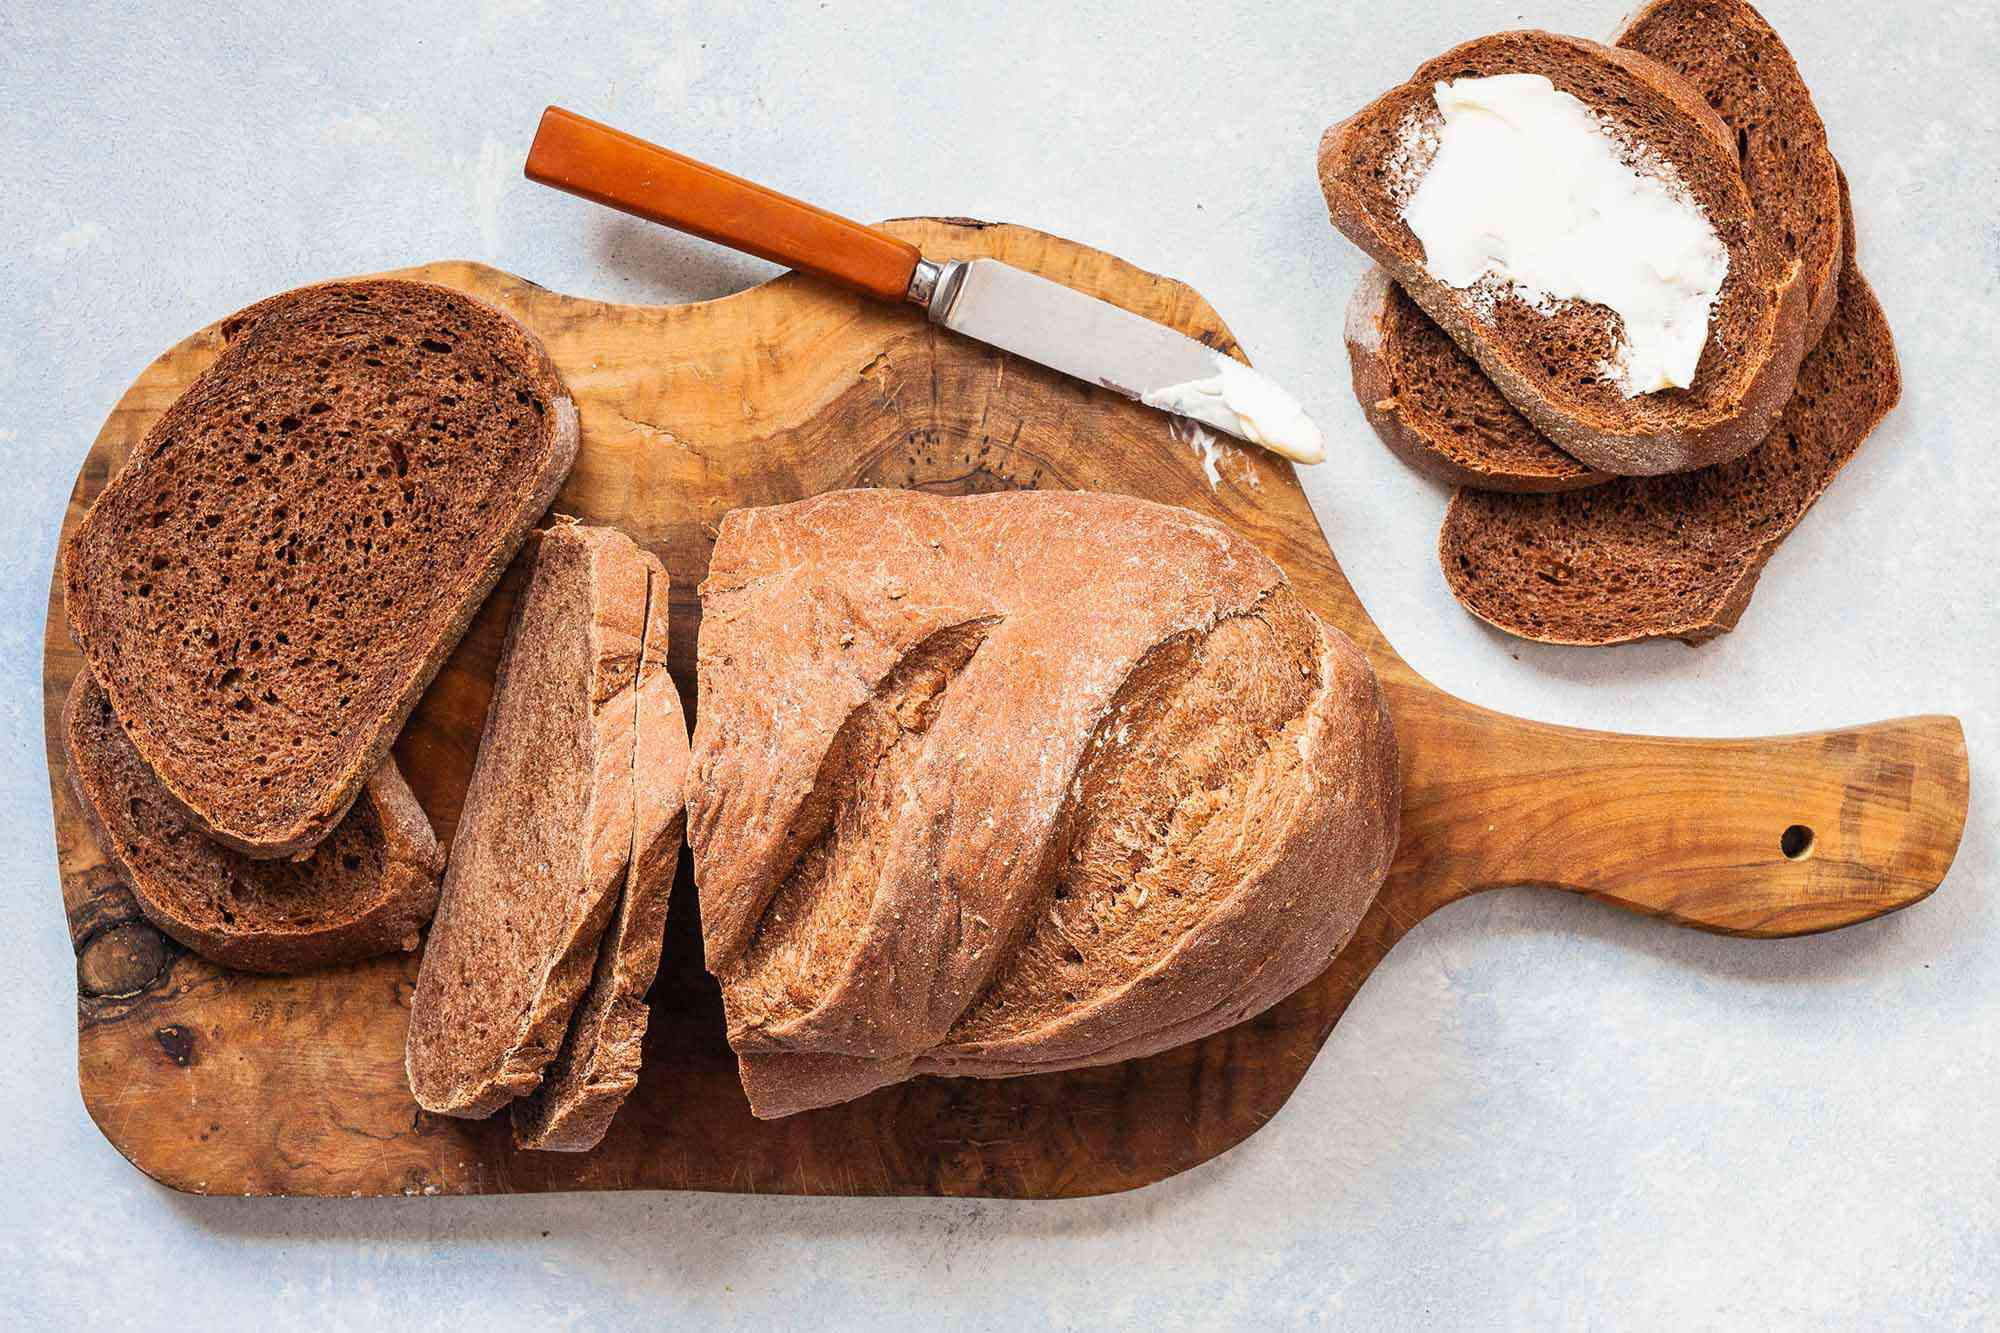 Homemade Rye Bread sliced on board with butter